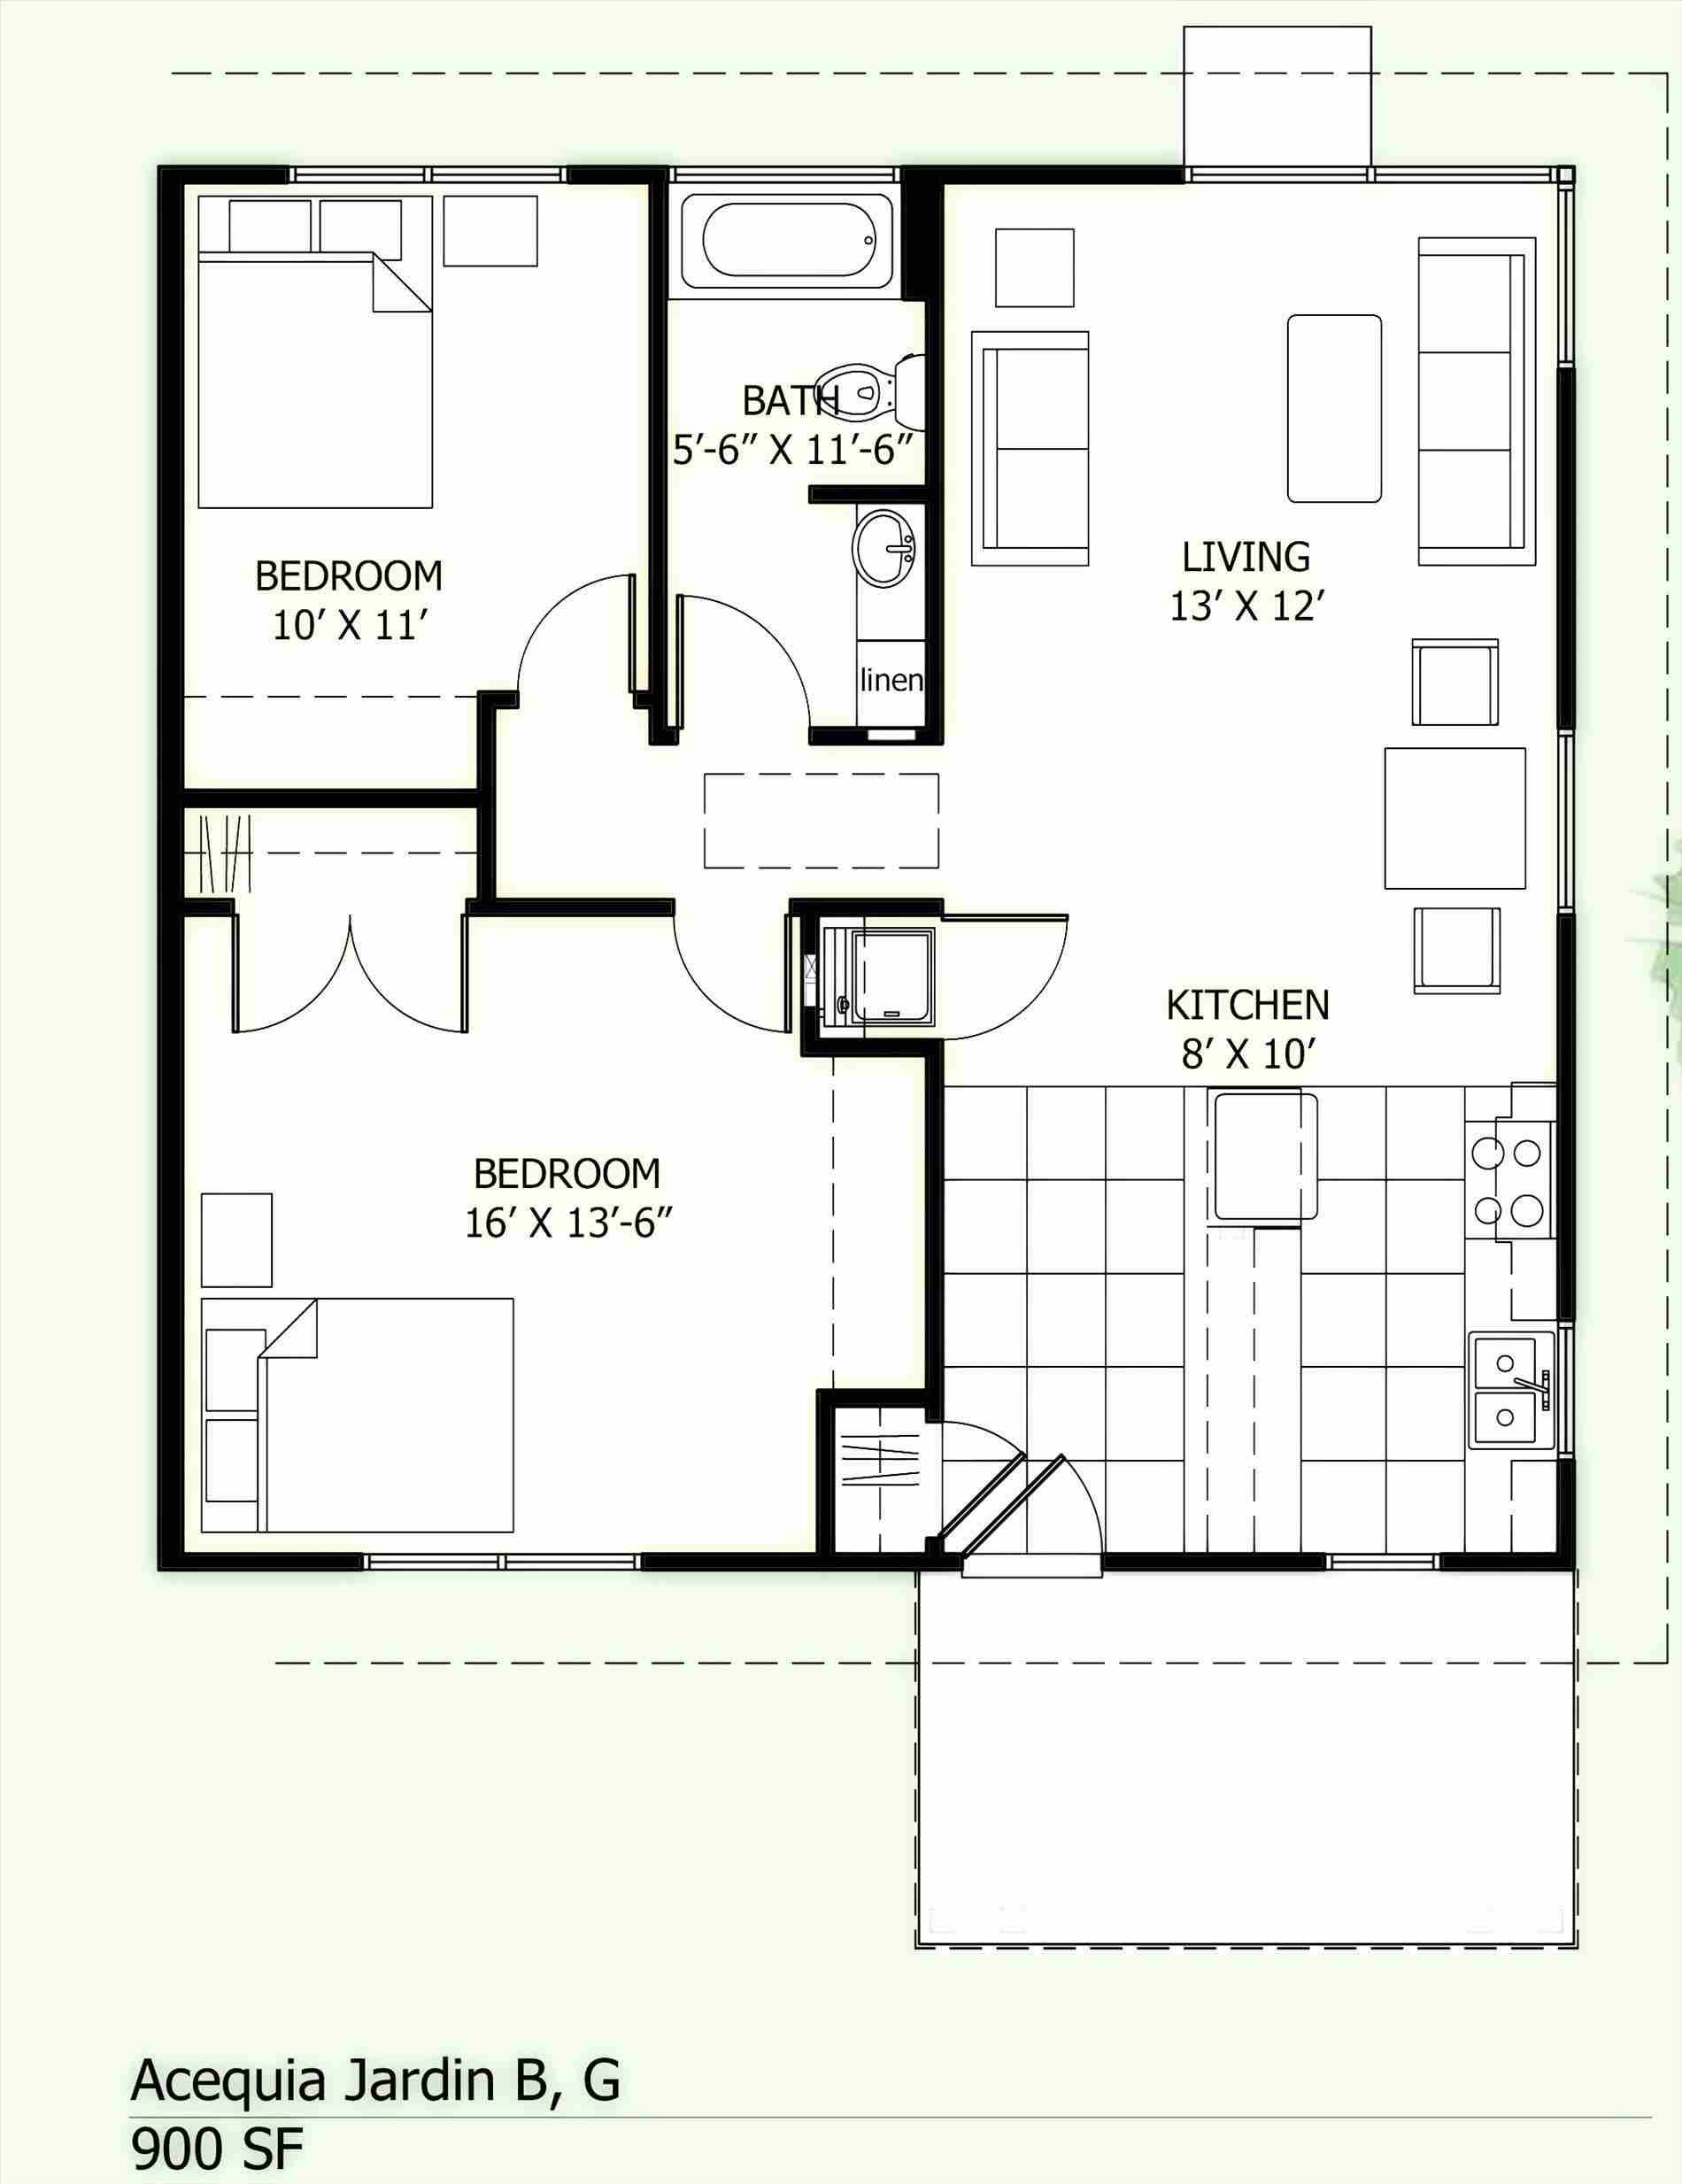 Http Mna Events Com 800 Sq Ft Duplex House Plan Indian Style Html 800 Sq Ft House Small House Floor Plans 20x30 House Plans